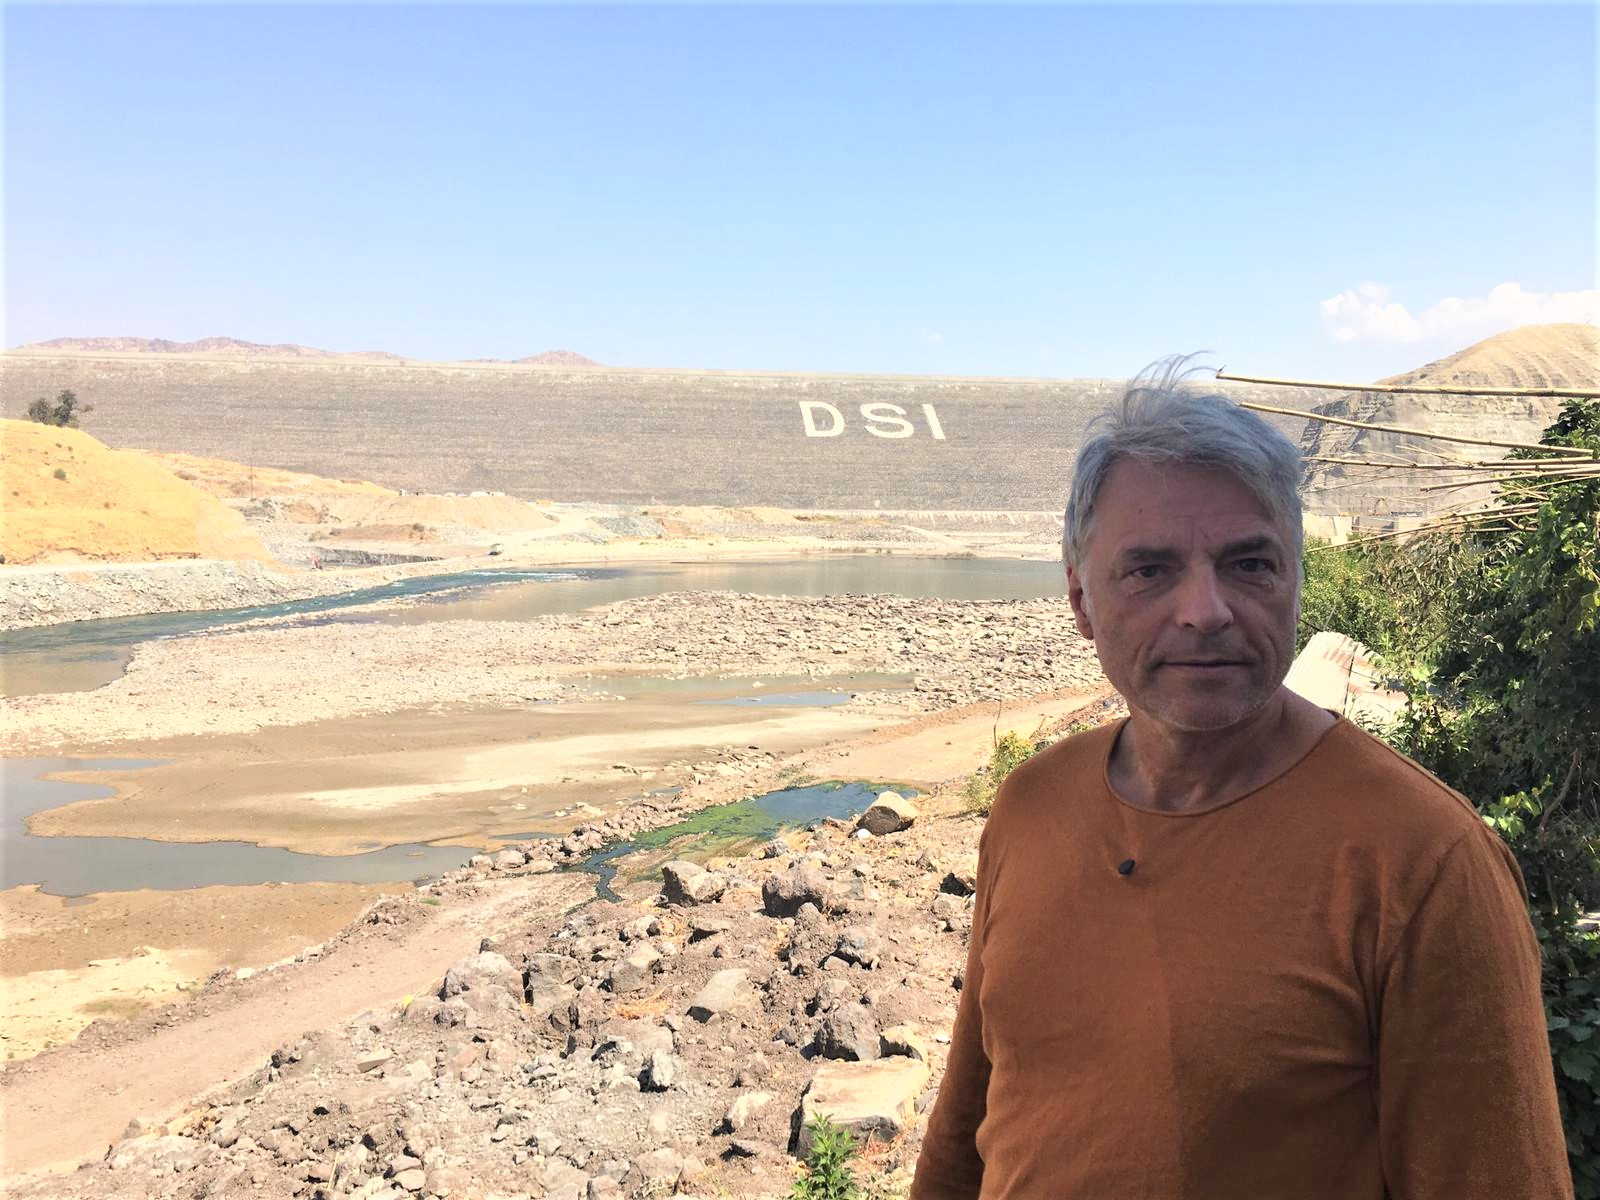 Ulrich Eichelmann says farewell to Hasankeyf, the drowning World Heritage Site. © Riverwatch